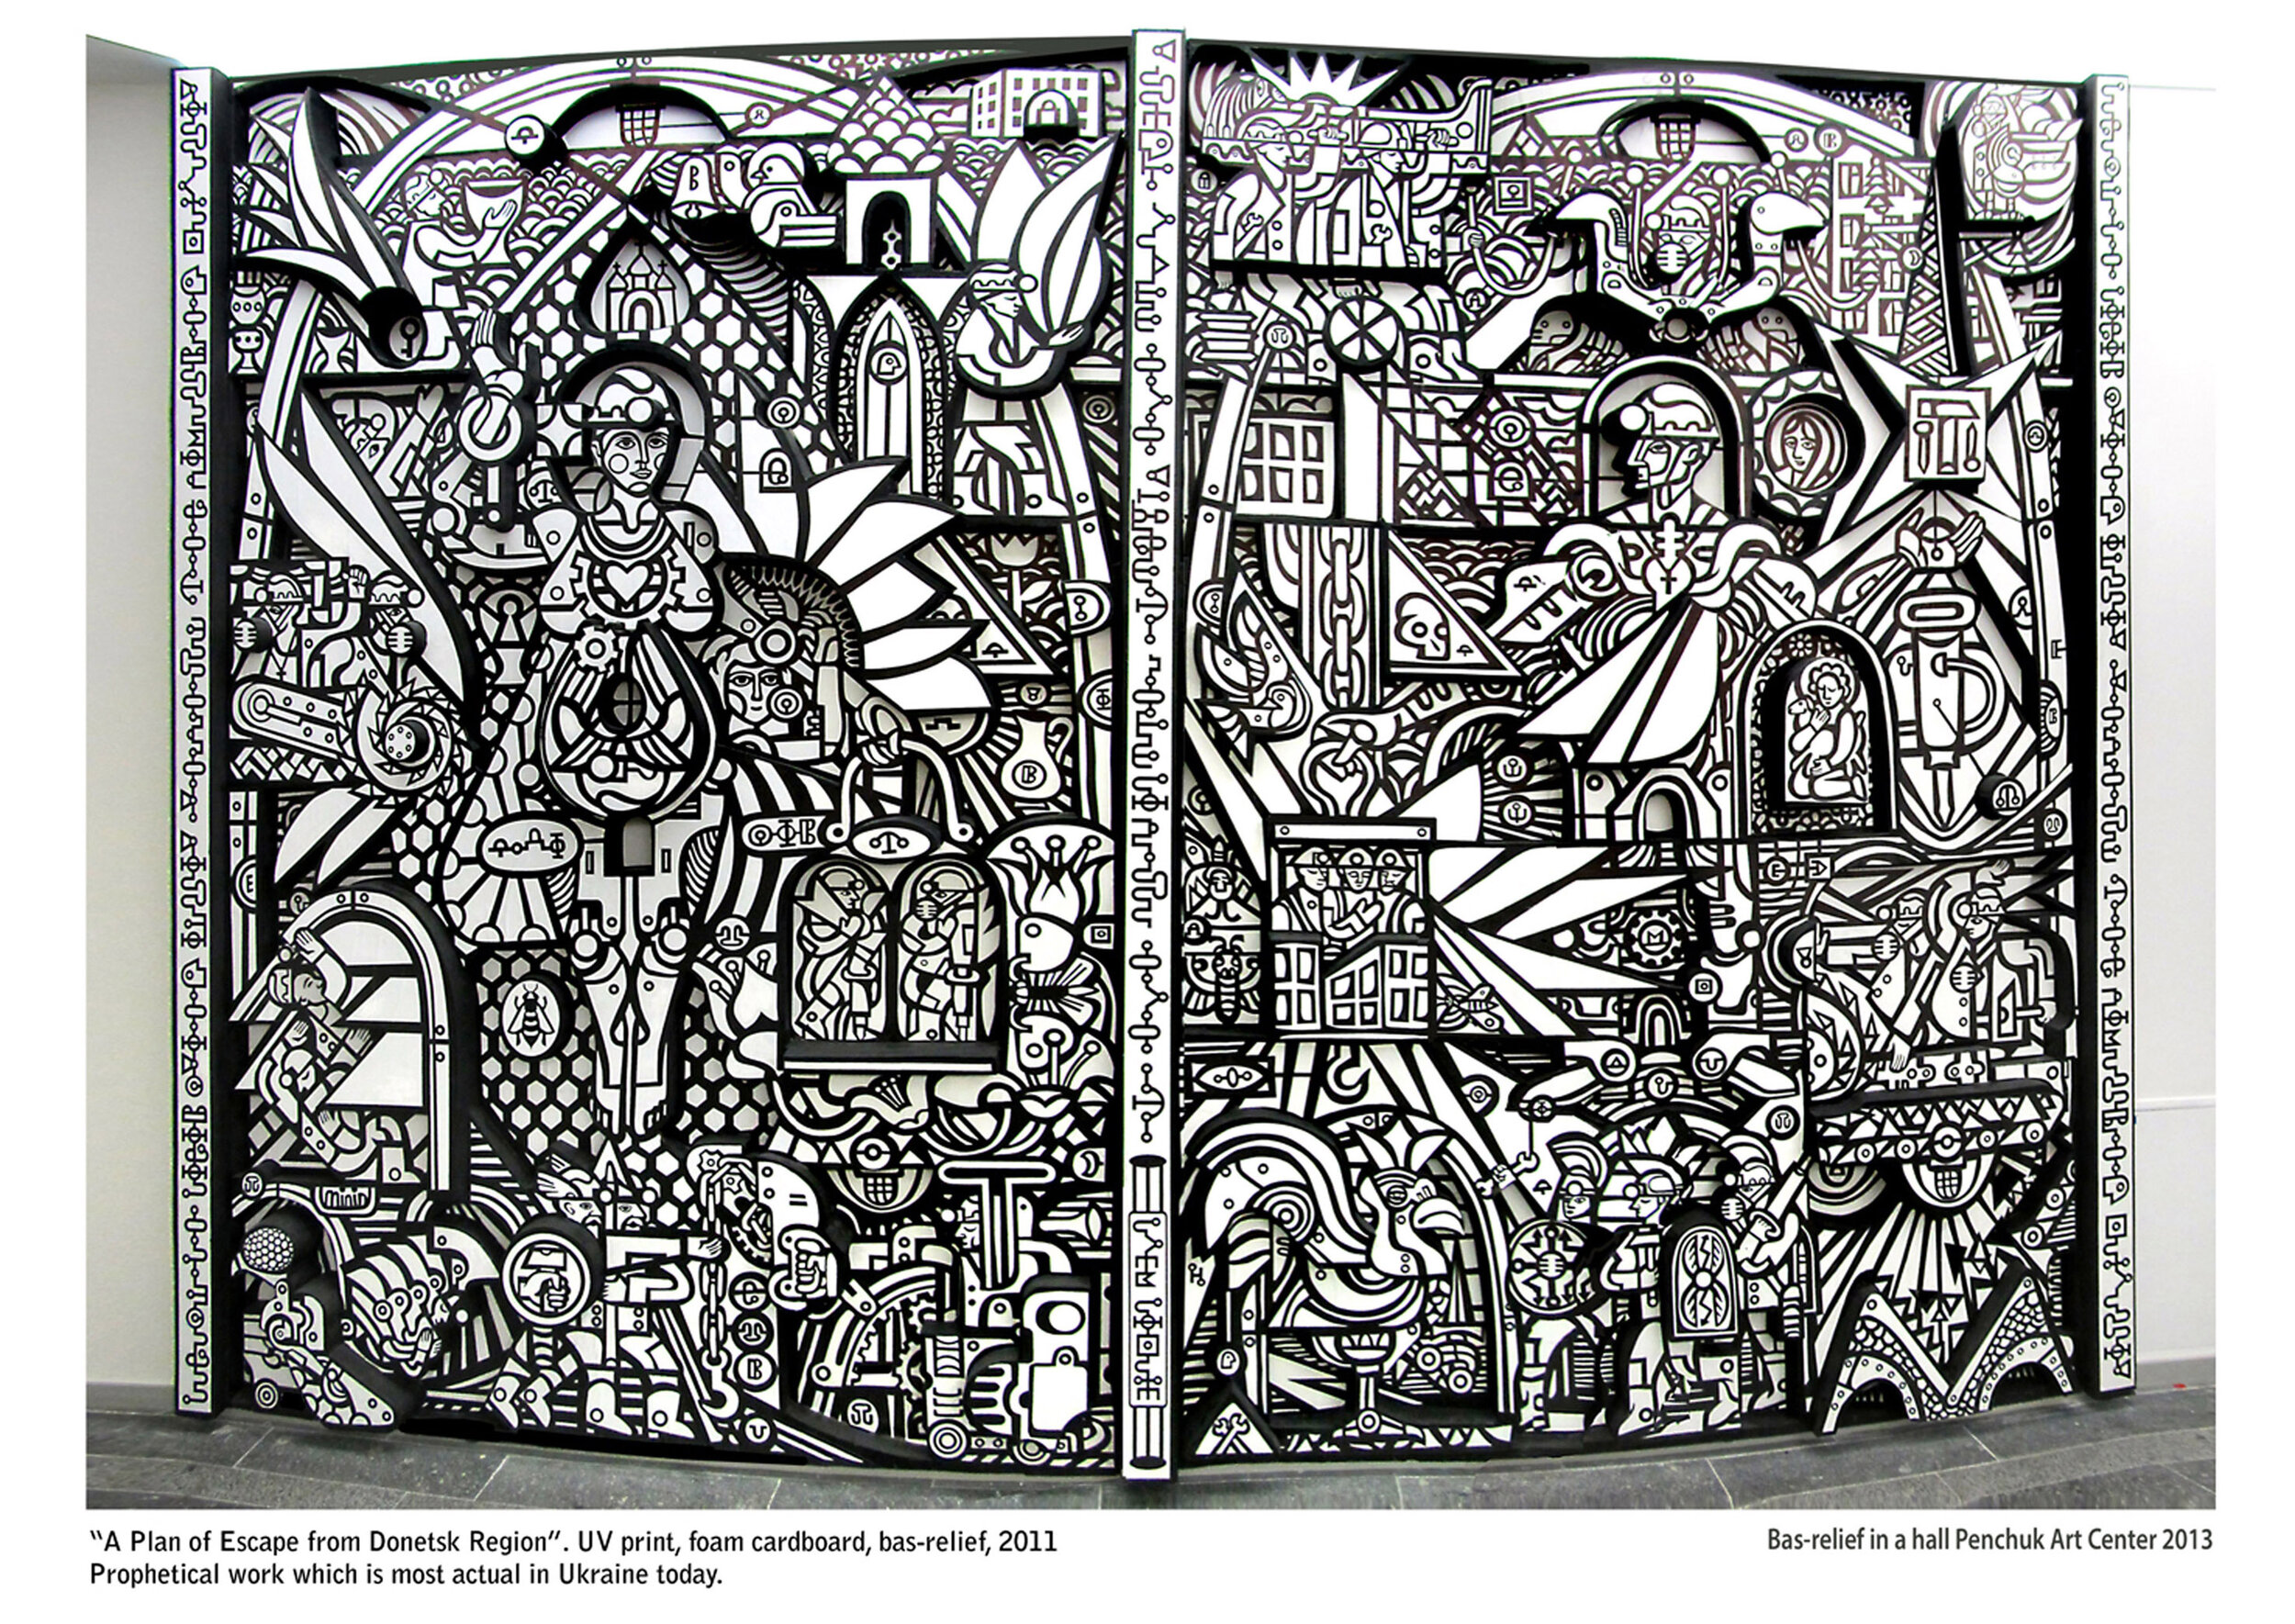 A_Plan_of_Escape_from_Donetsk_Region,Roman_Minin,2011,any_size,minimum_price_5000dollarsUVprint_on_foam_cardboard,bass_relief,or_lightbox,or_stained glass.jpg